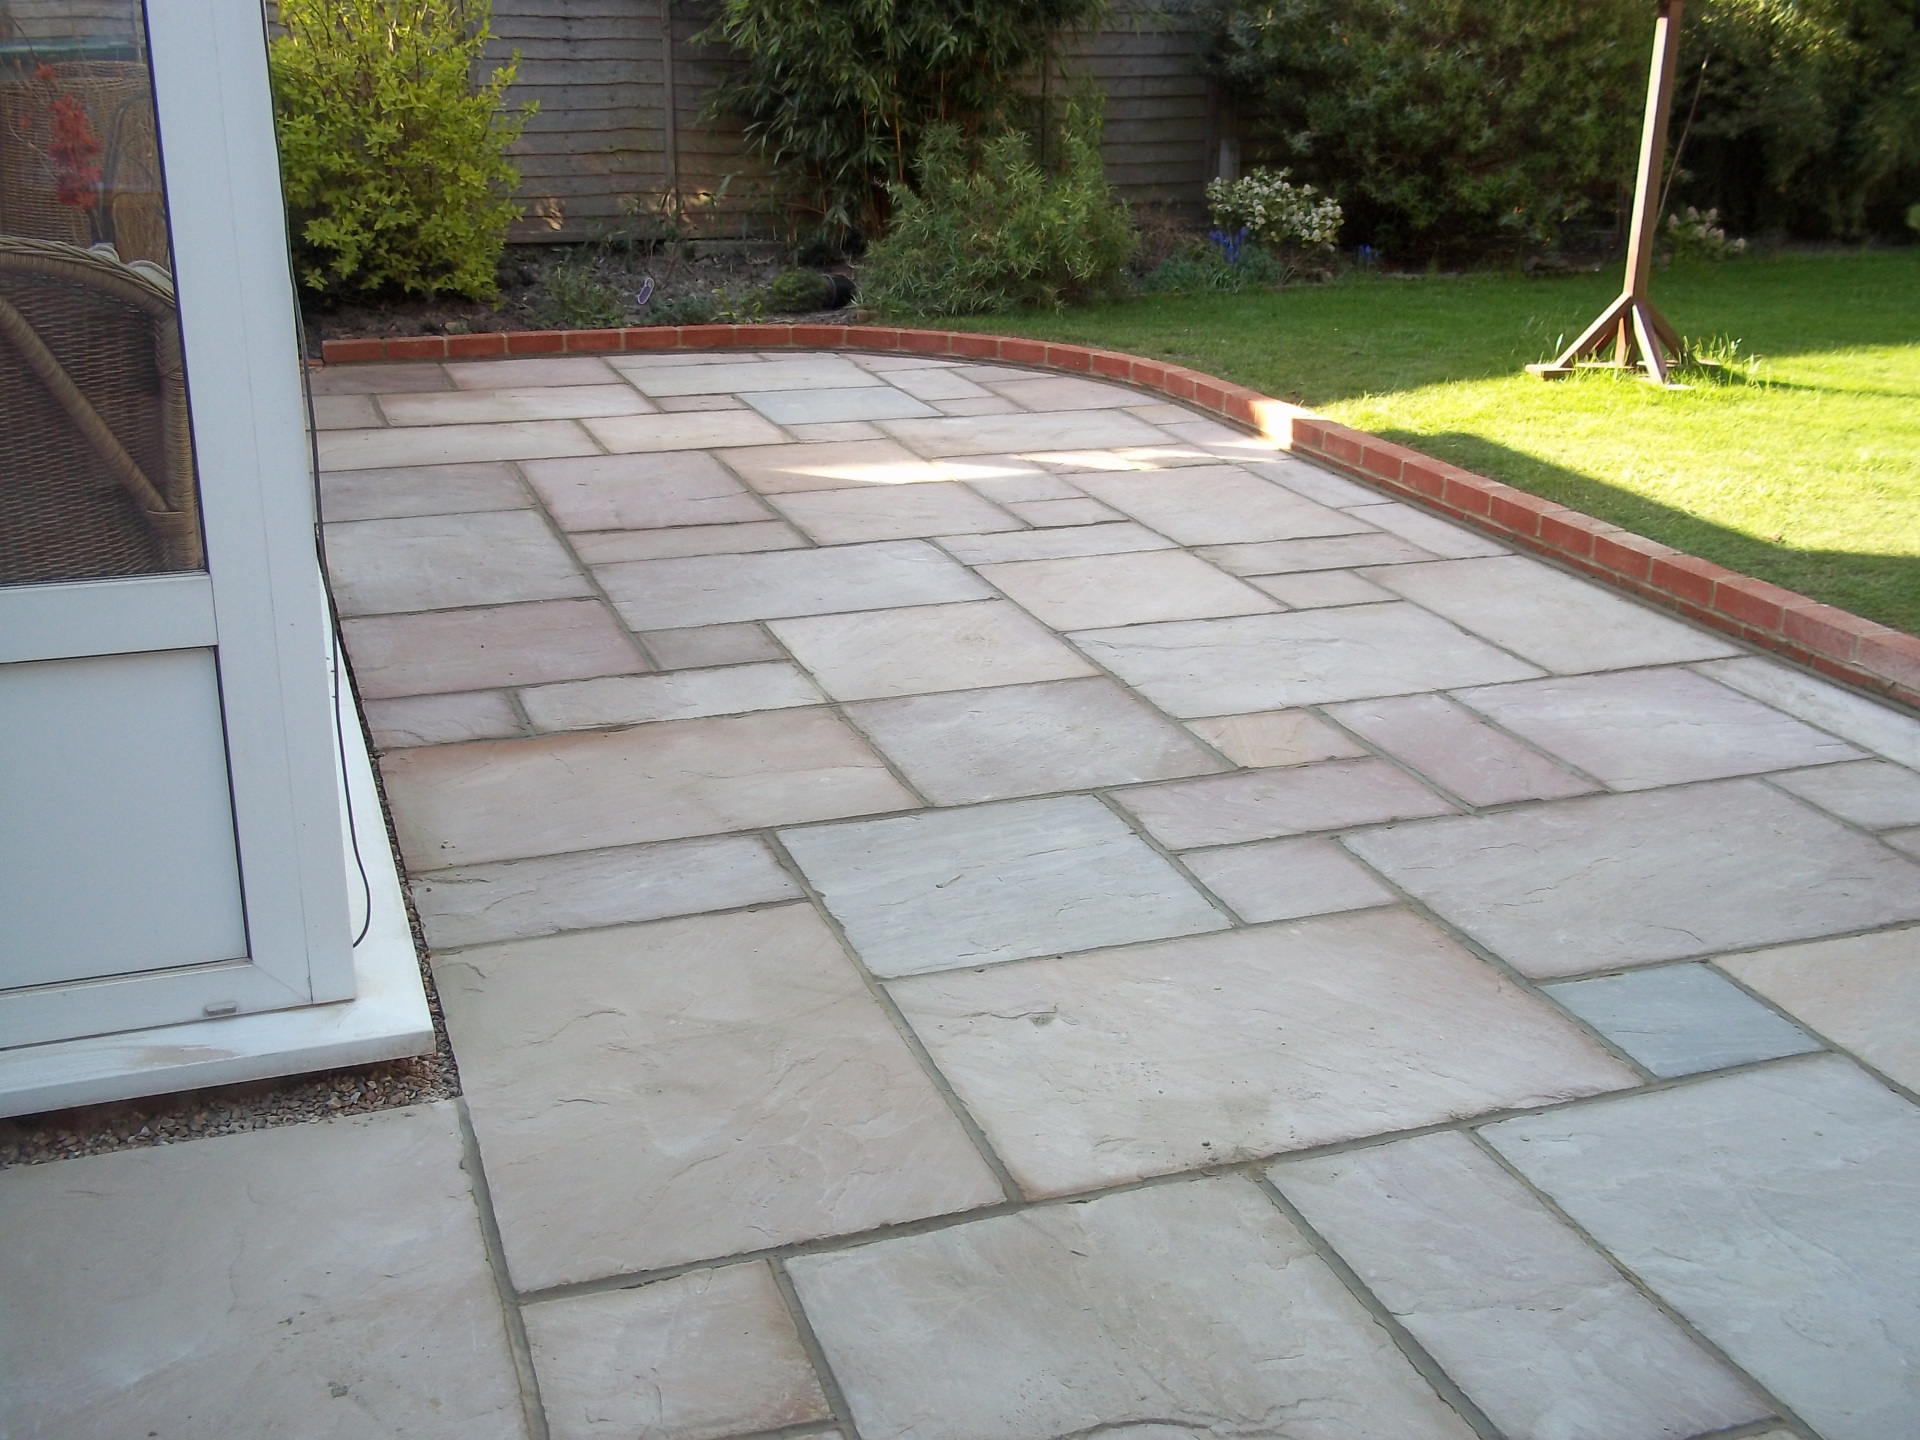 Indian sandstone patio with brick edging.